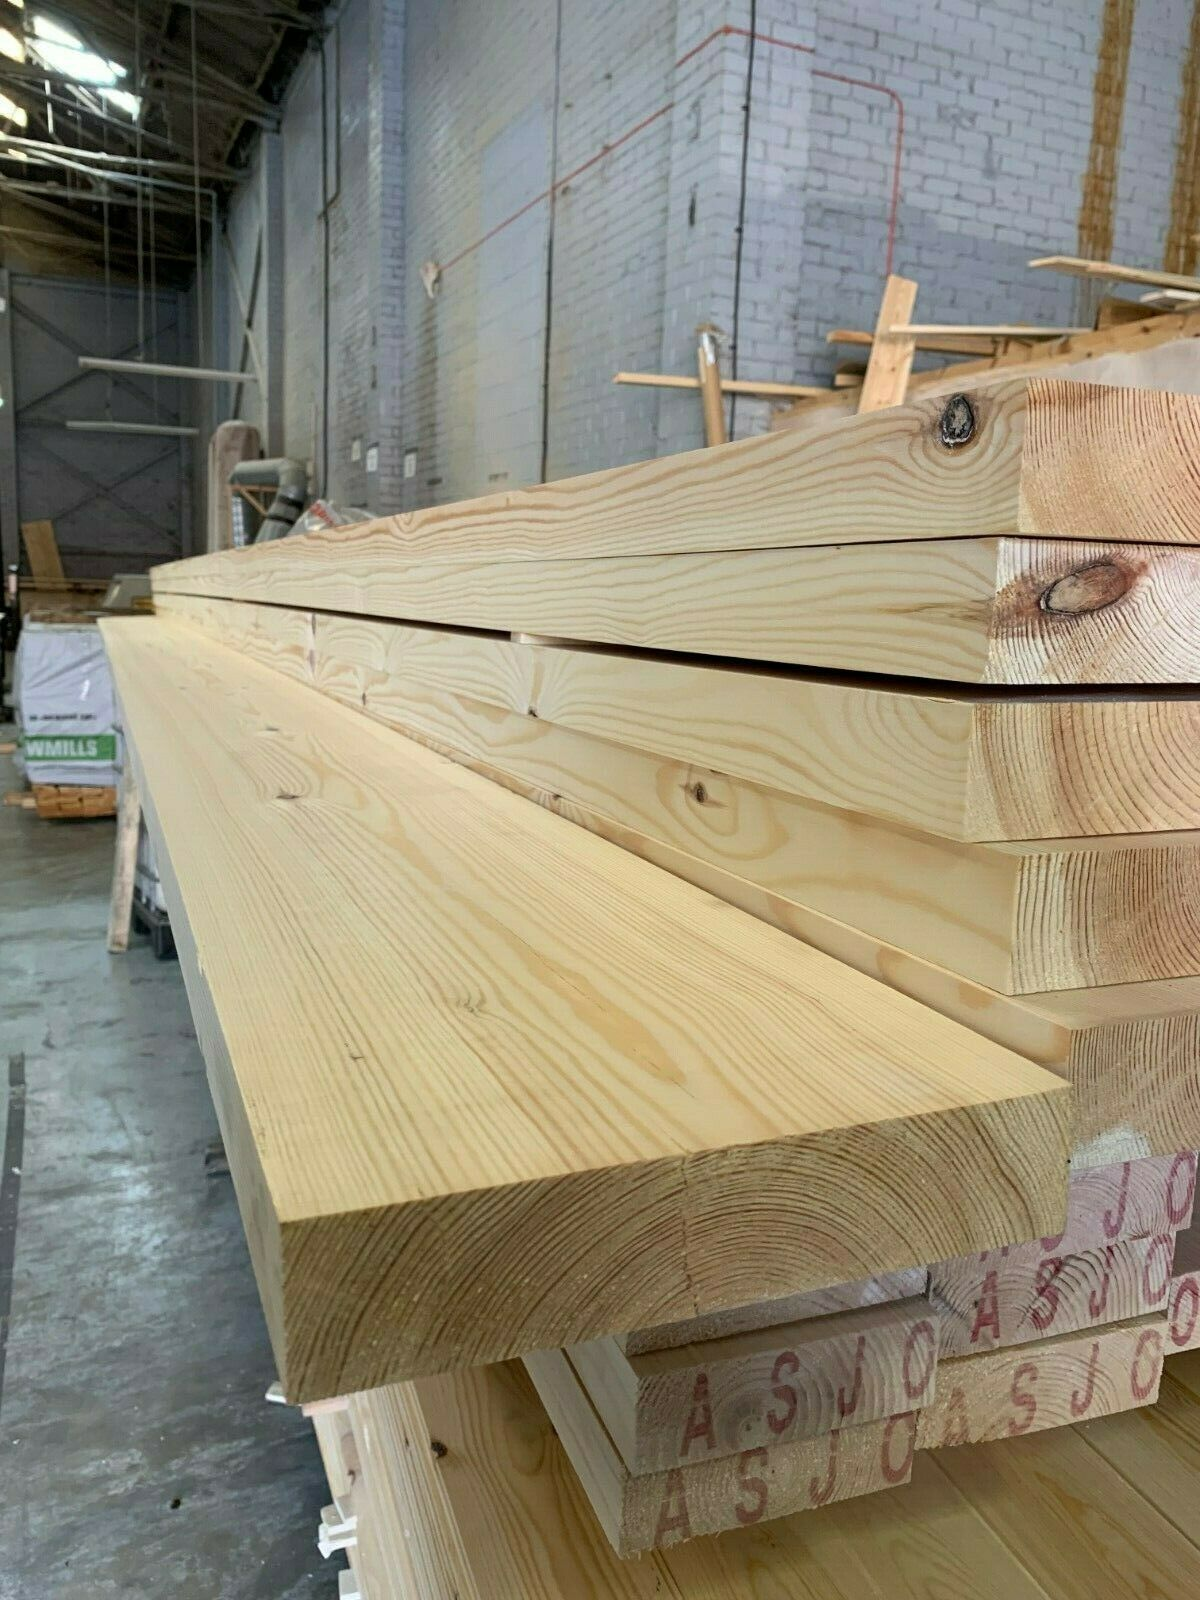 TOP GRADE PINE REDWOOD 9X2 PSE 5.1M LENGTHS LIMITED STOCK, PRICE PER LENGTH